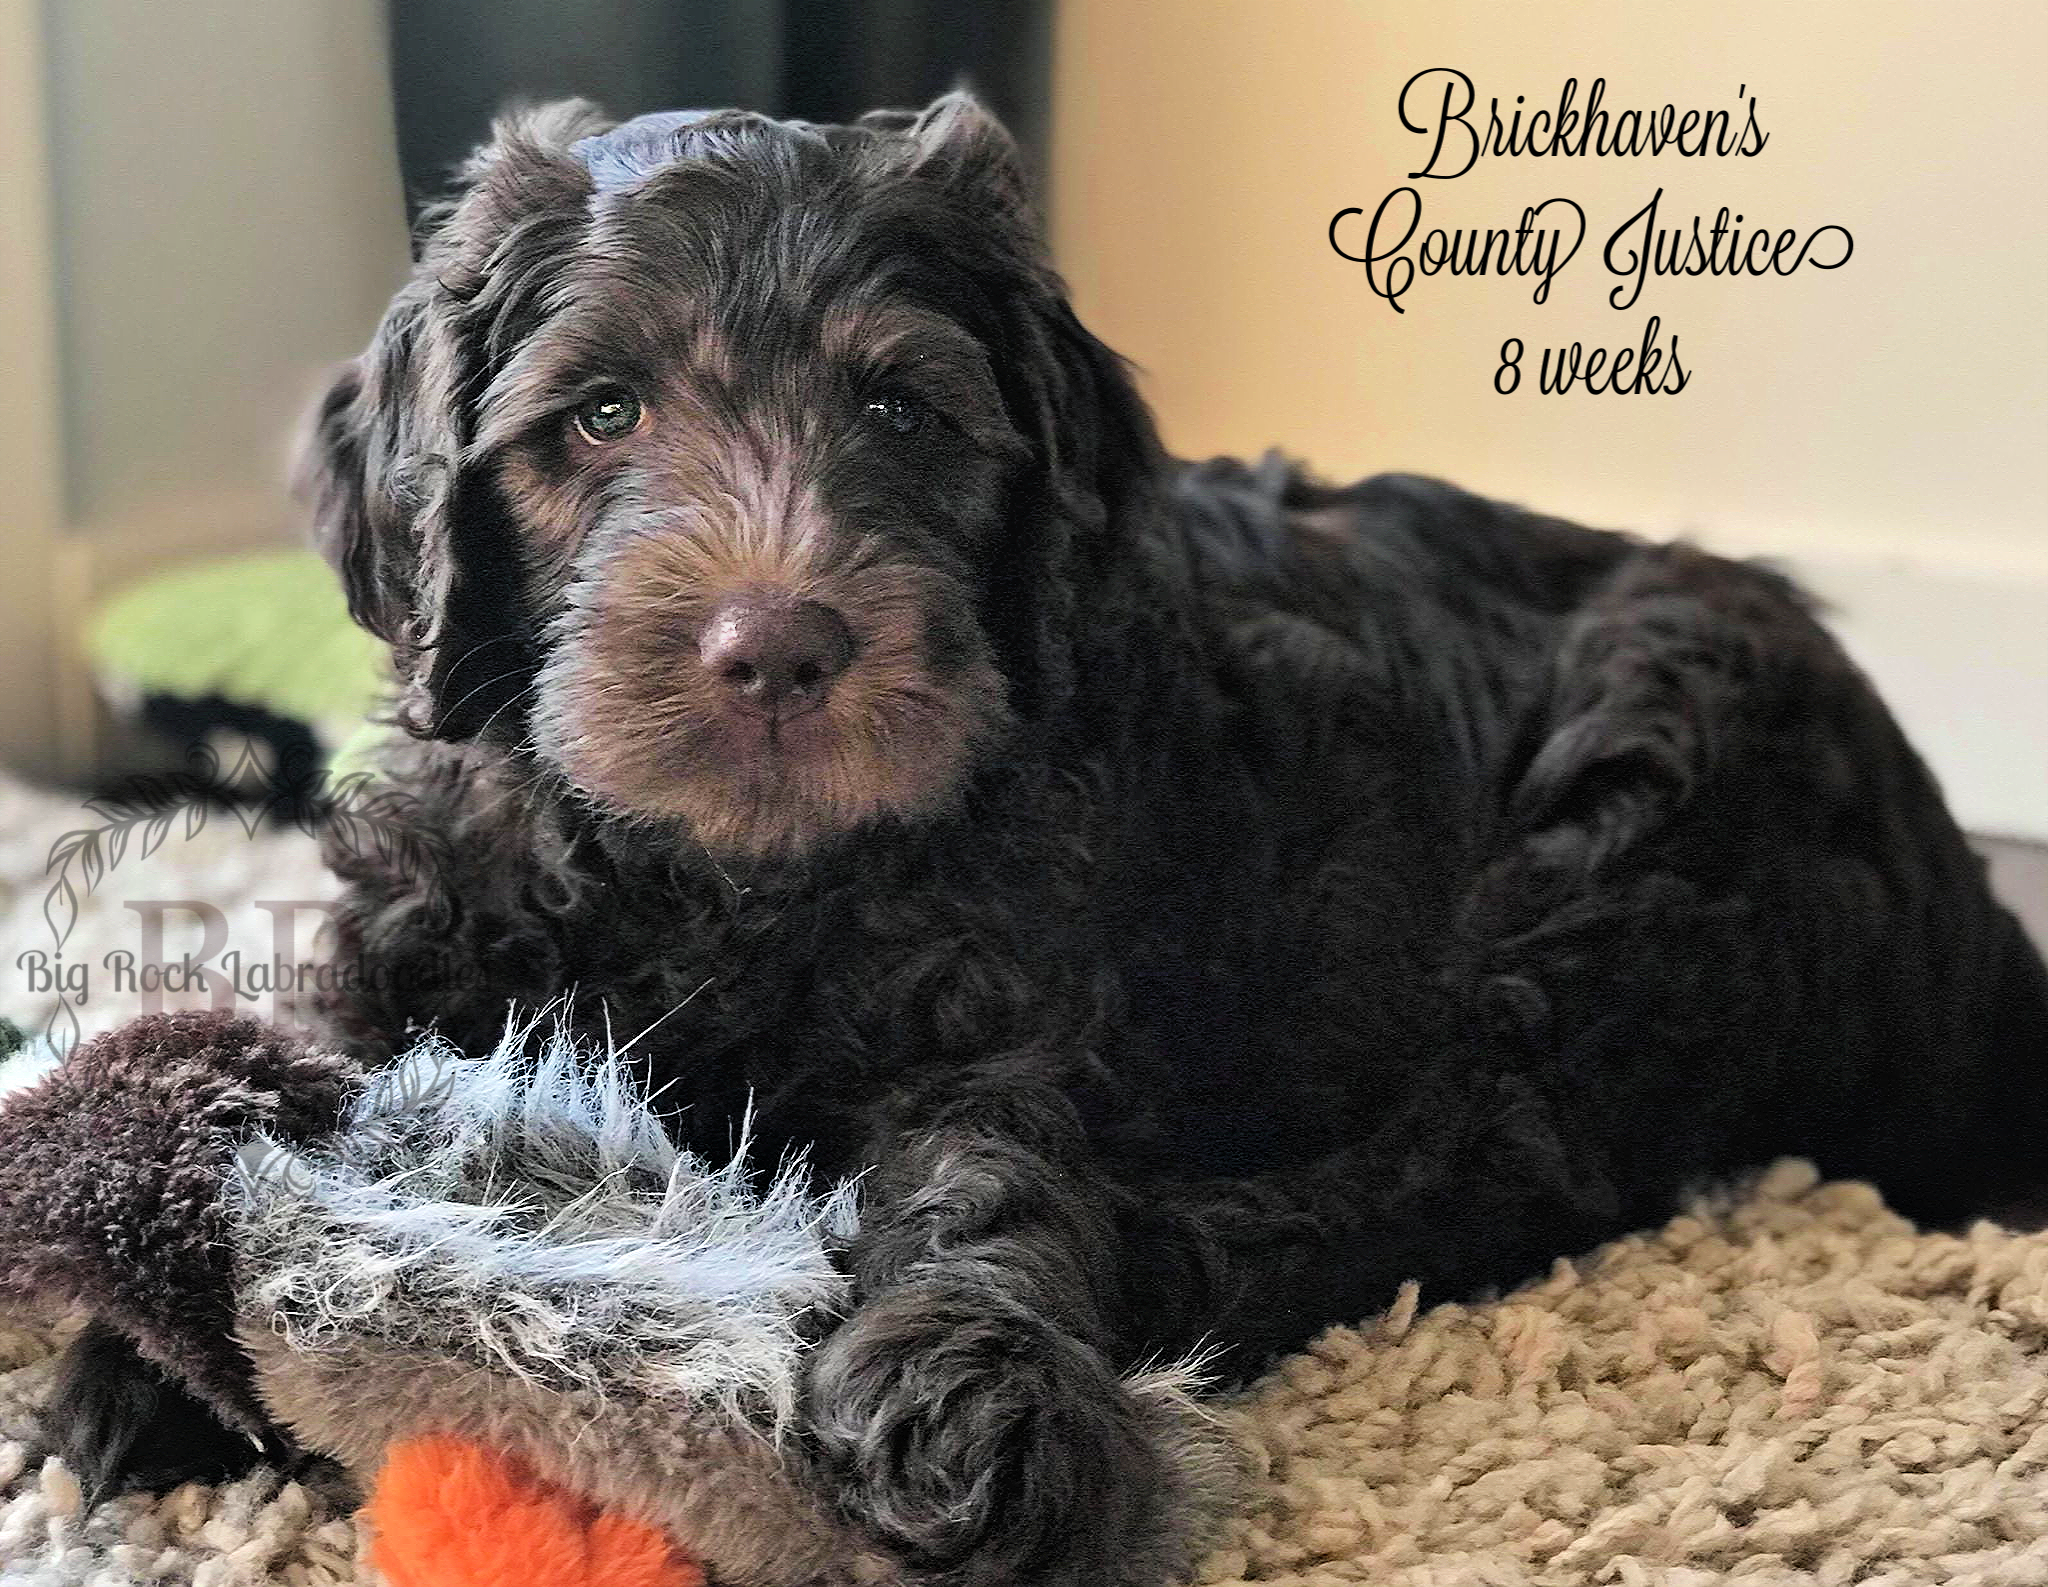 Brickhaven's County Justice 8 weeks